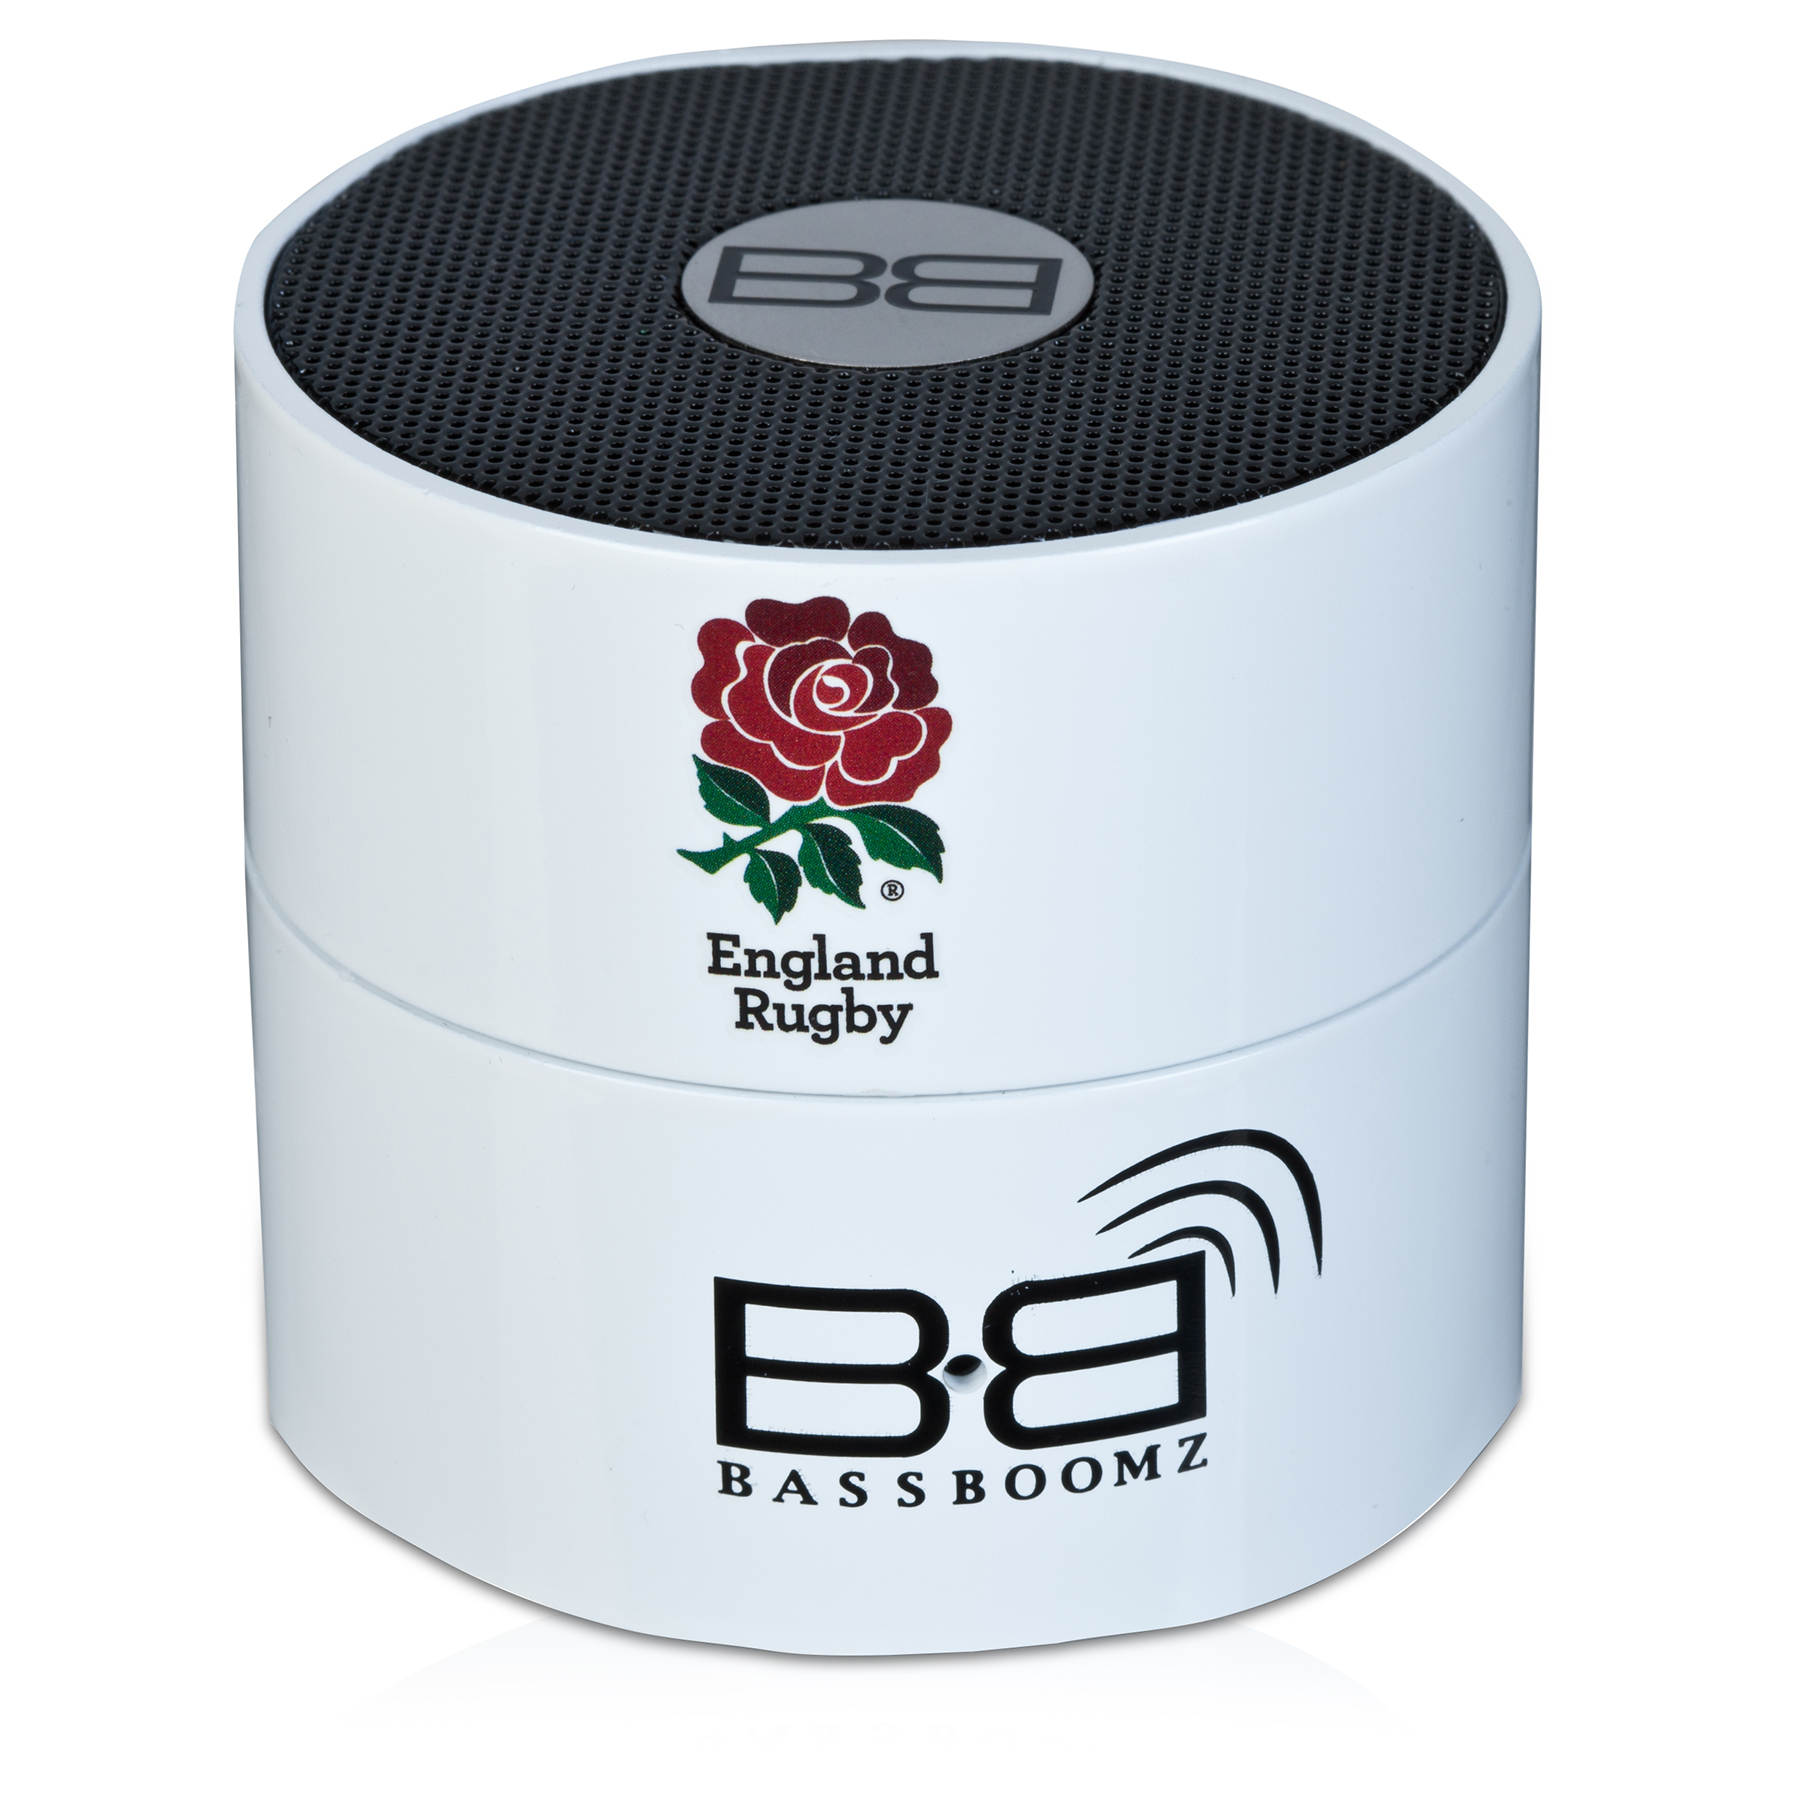 England BassBoomz Portable Bluetooth Speaker